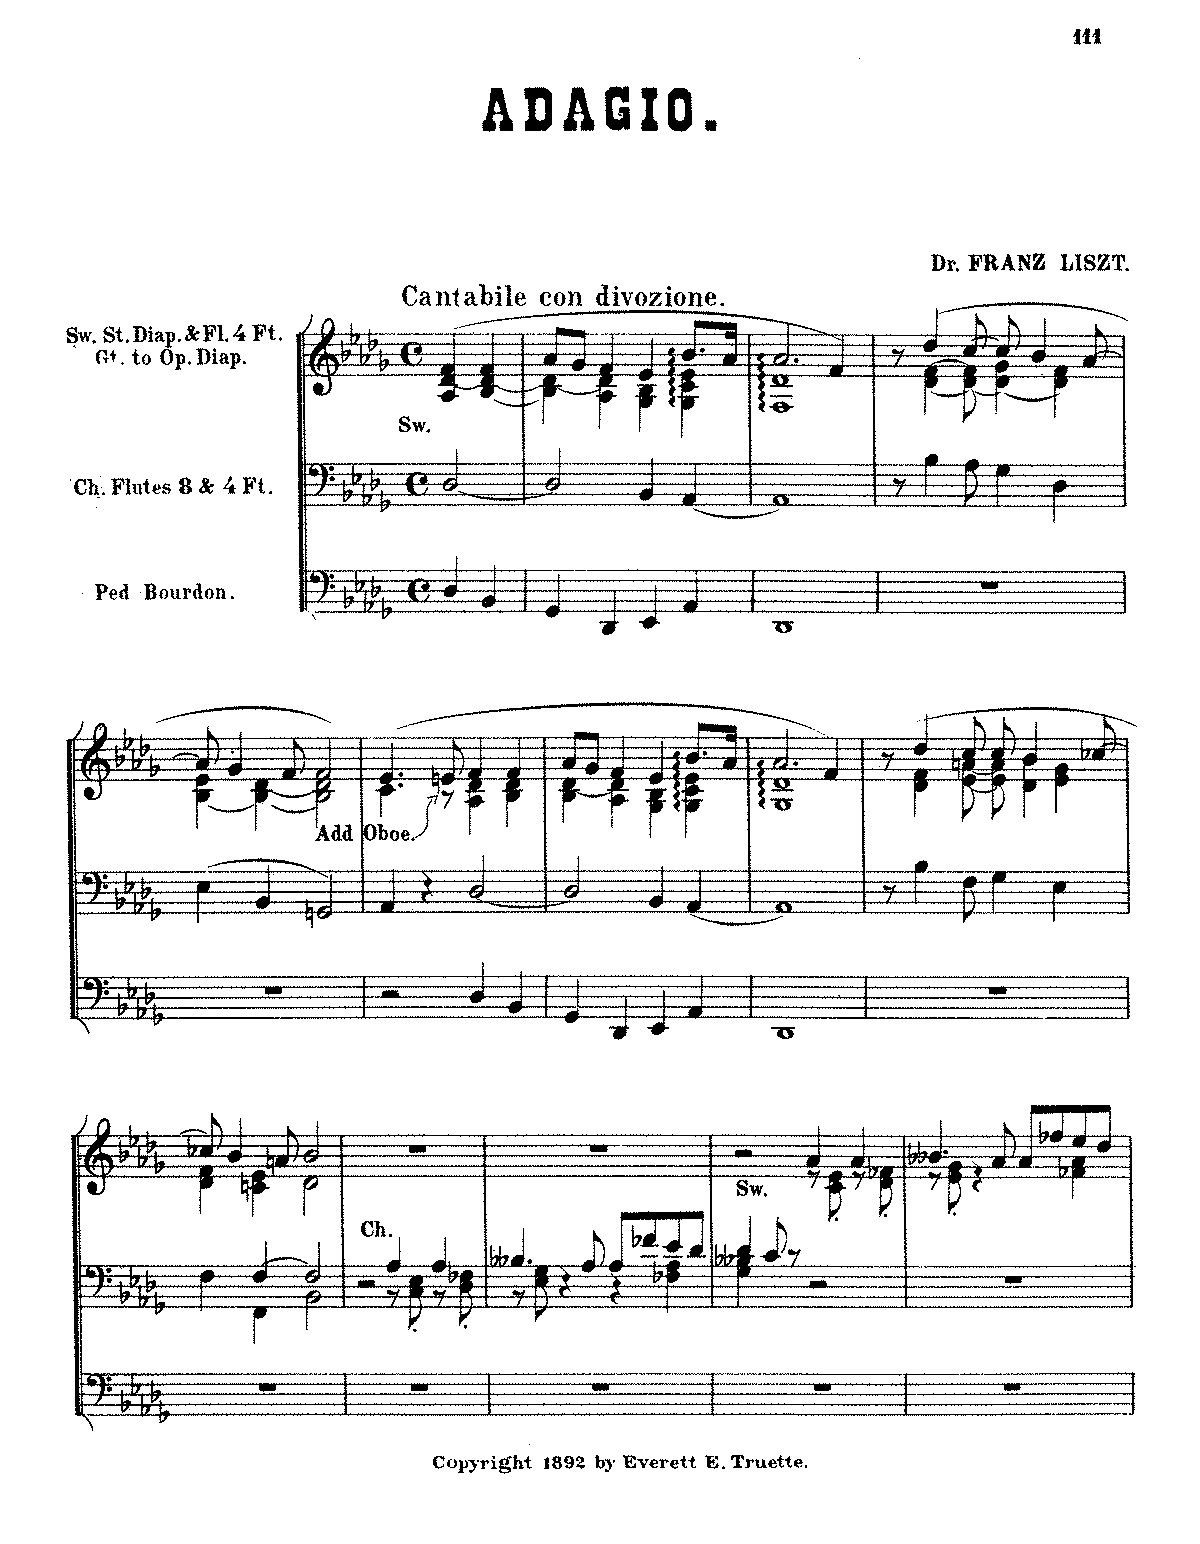 PMLP02592-FLiszt Consolations S.172no4 Adagio for Organ.pdf